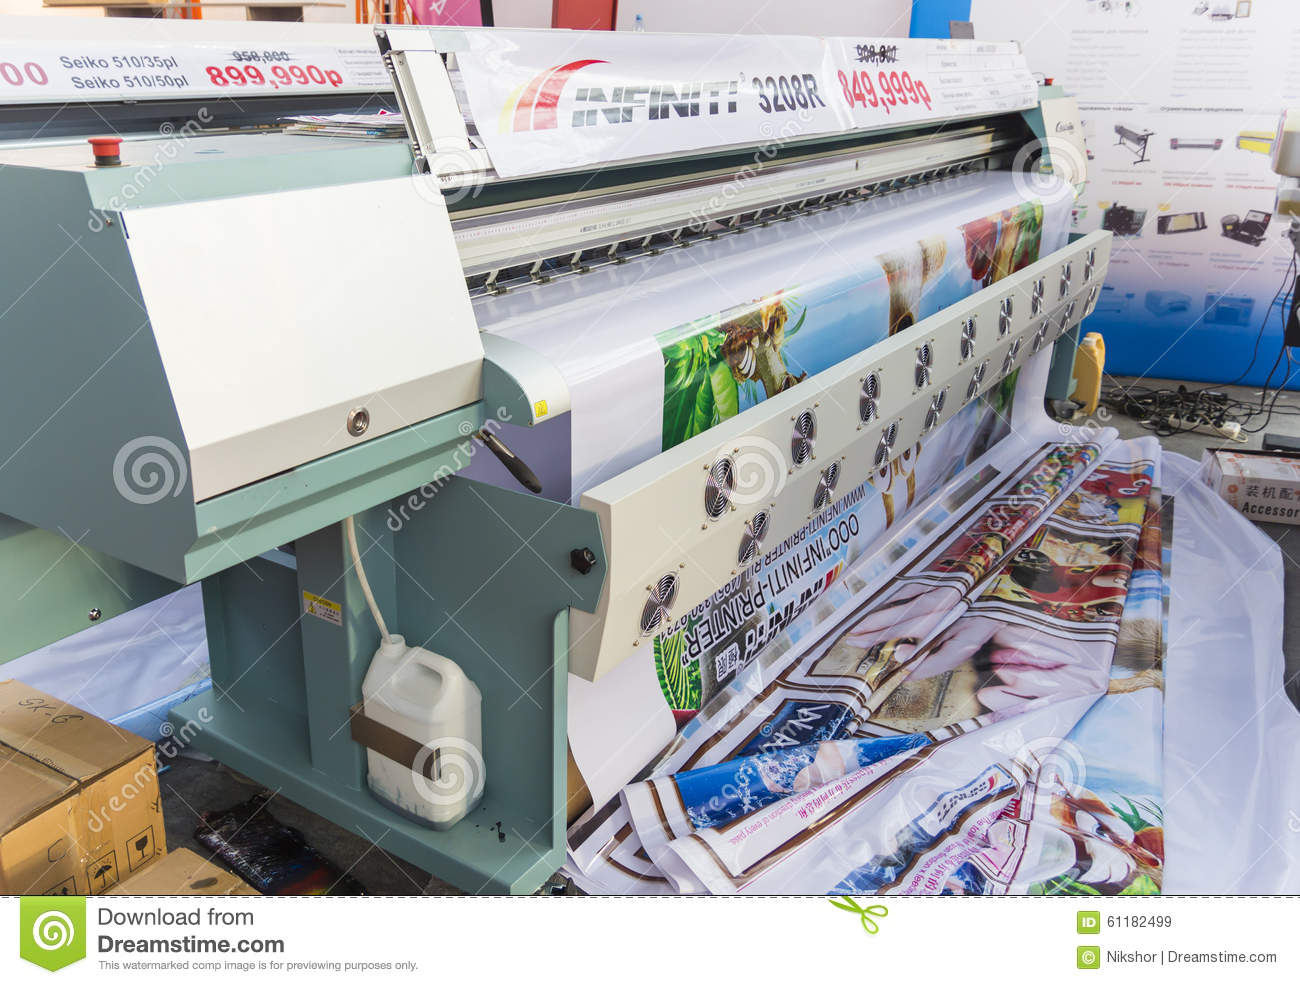 Service printers. Moscow 4